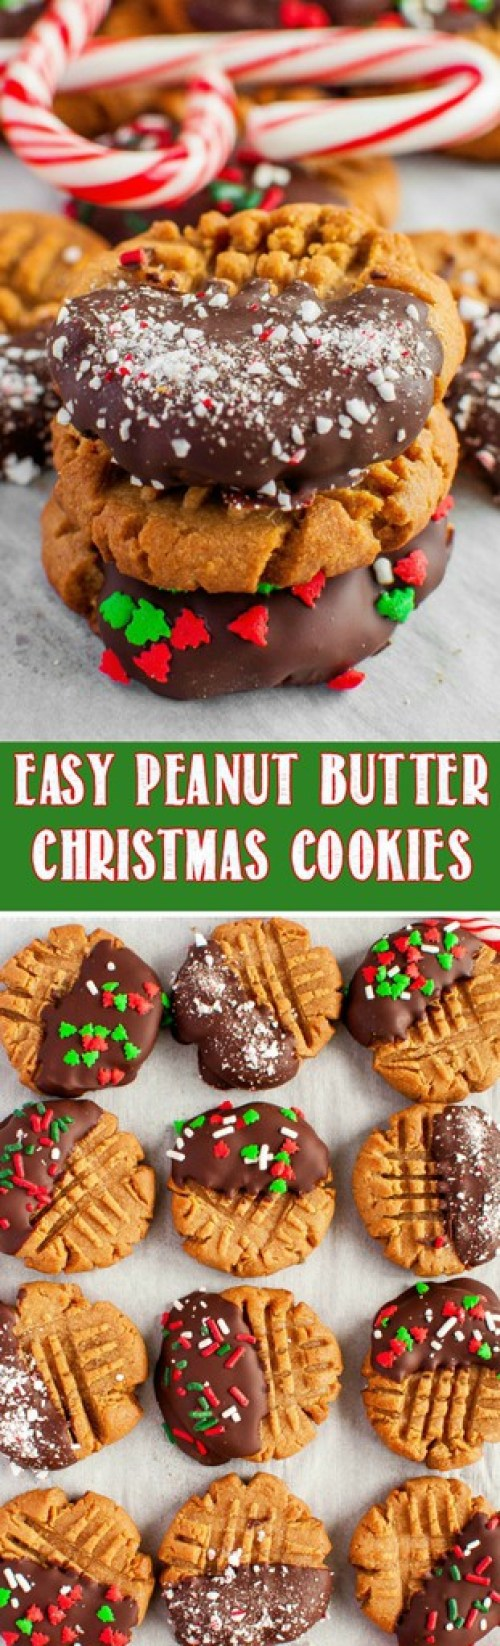 This Easy Christmas Peanut Butter Cookie Recipe is so fun and festive, and takes just 3 ingredients to make! Perfect recipe for a Christmas cookie exchange!